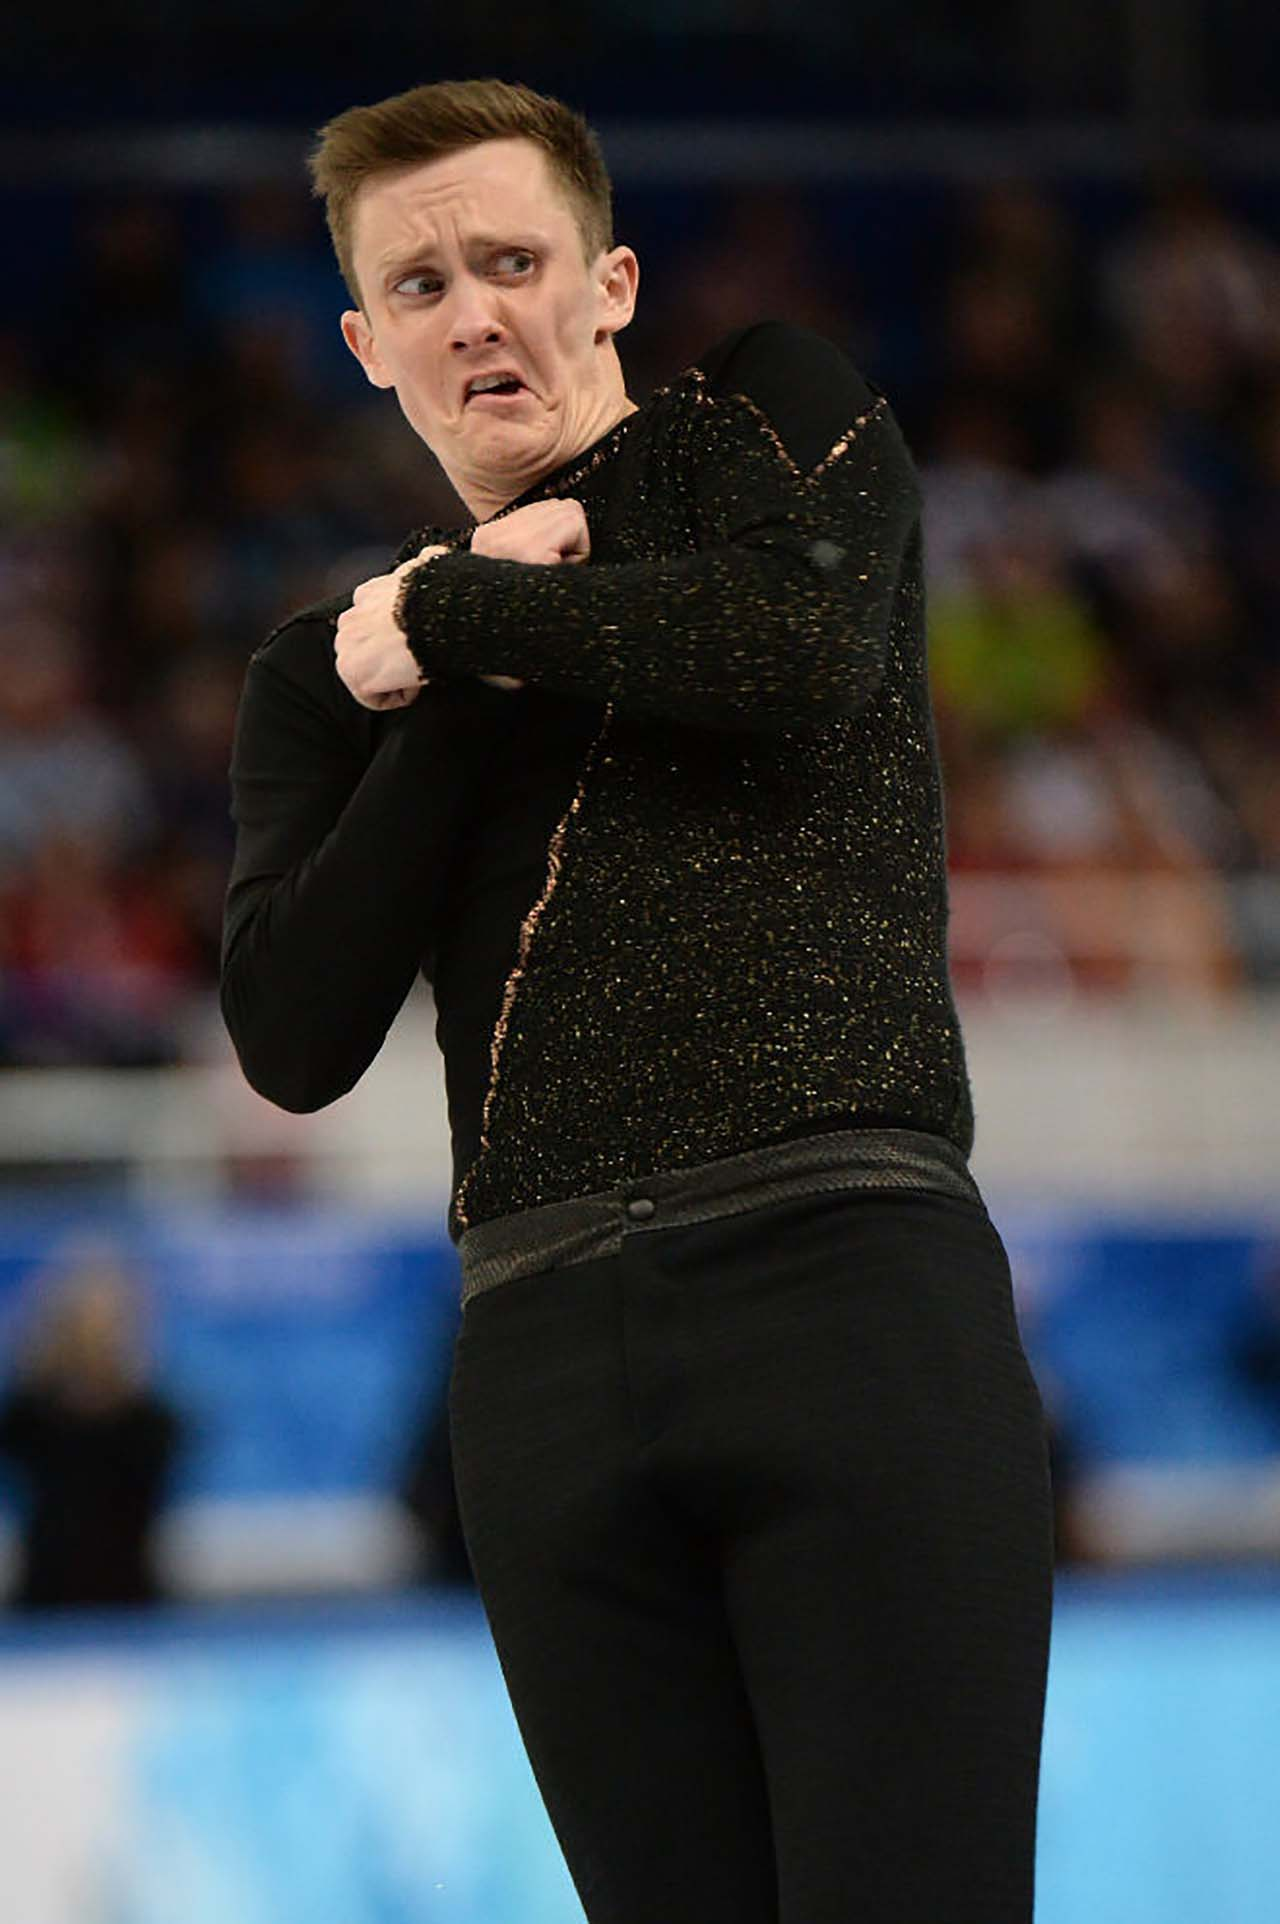 20 Hilarious Mid-Performance Faces Of Olympic Figure Skaters